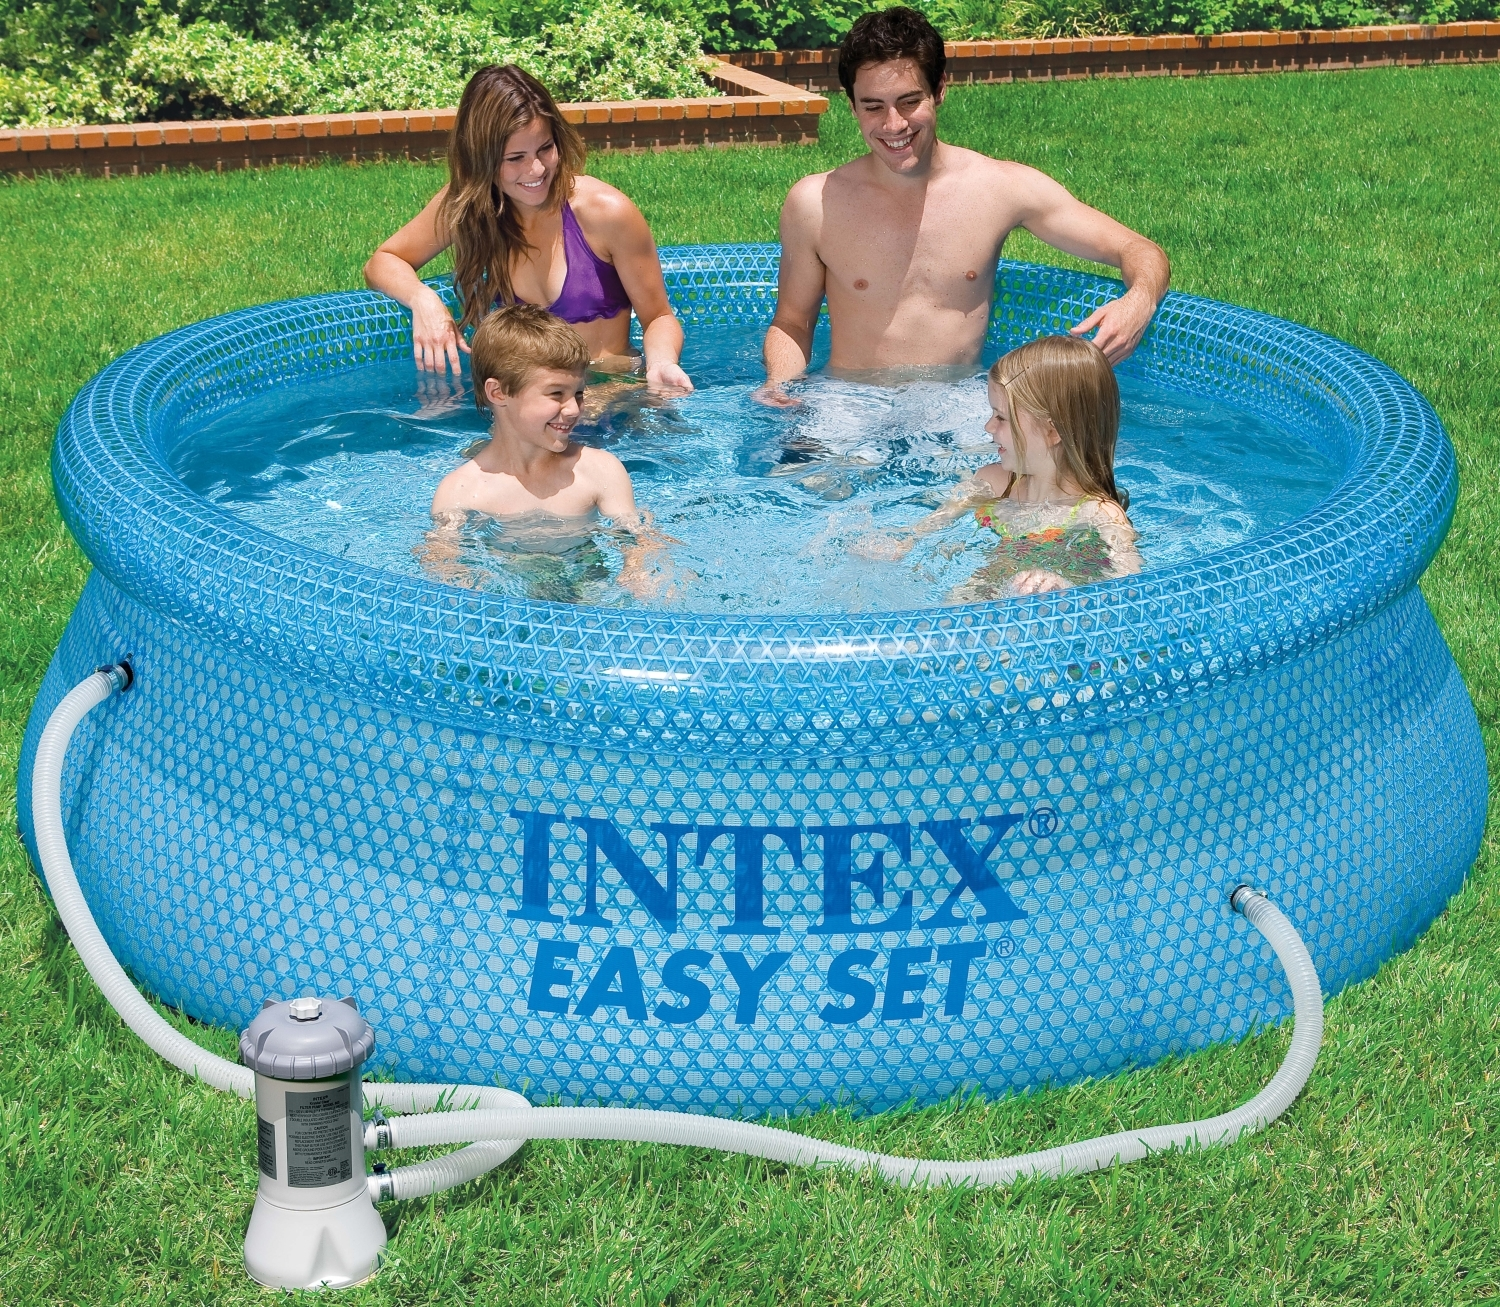 Filterpumpe Für Pool Welche Easy Set Pool Quotclearview Quot Mit Filterpumpe 244x76